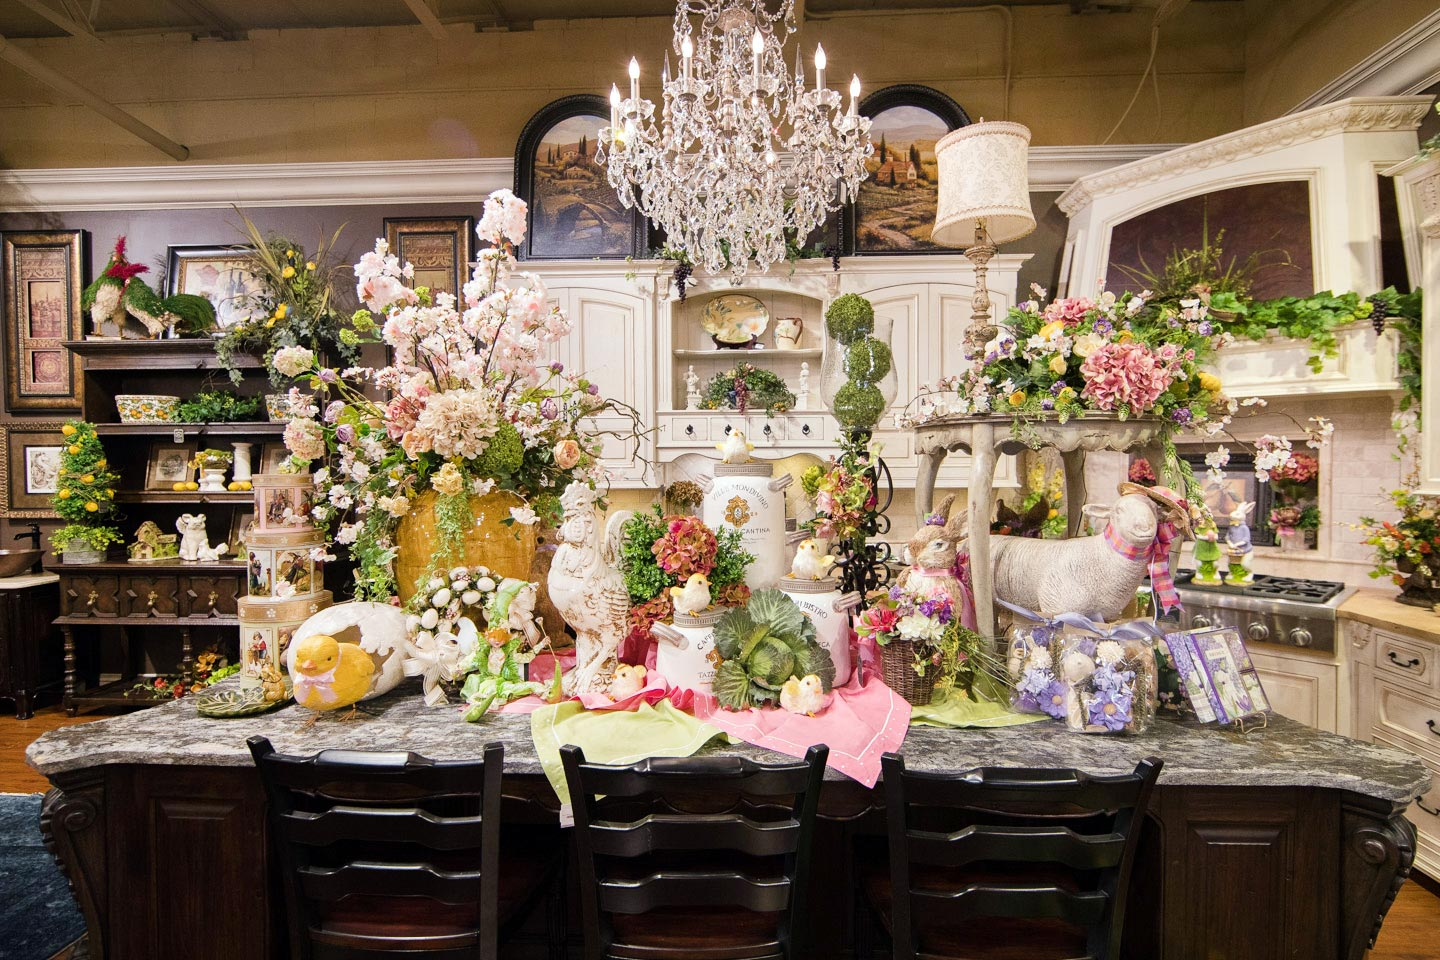 2017 open house blooming with spring decorations for Home furnishings and decor